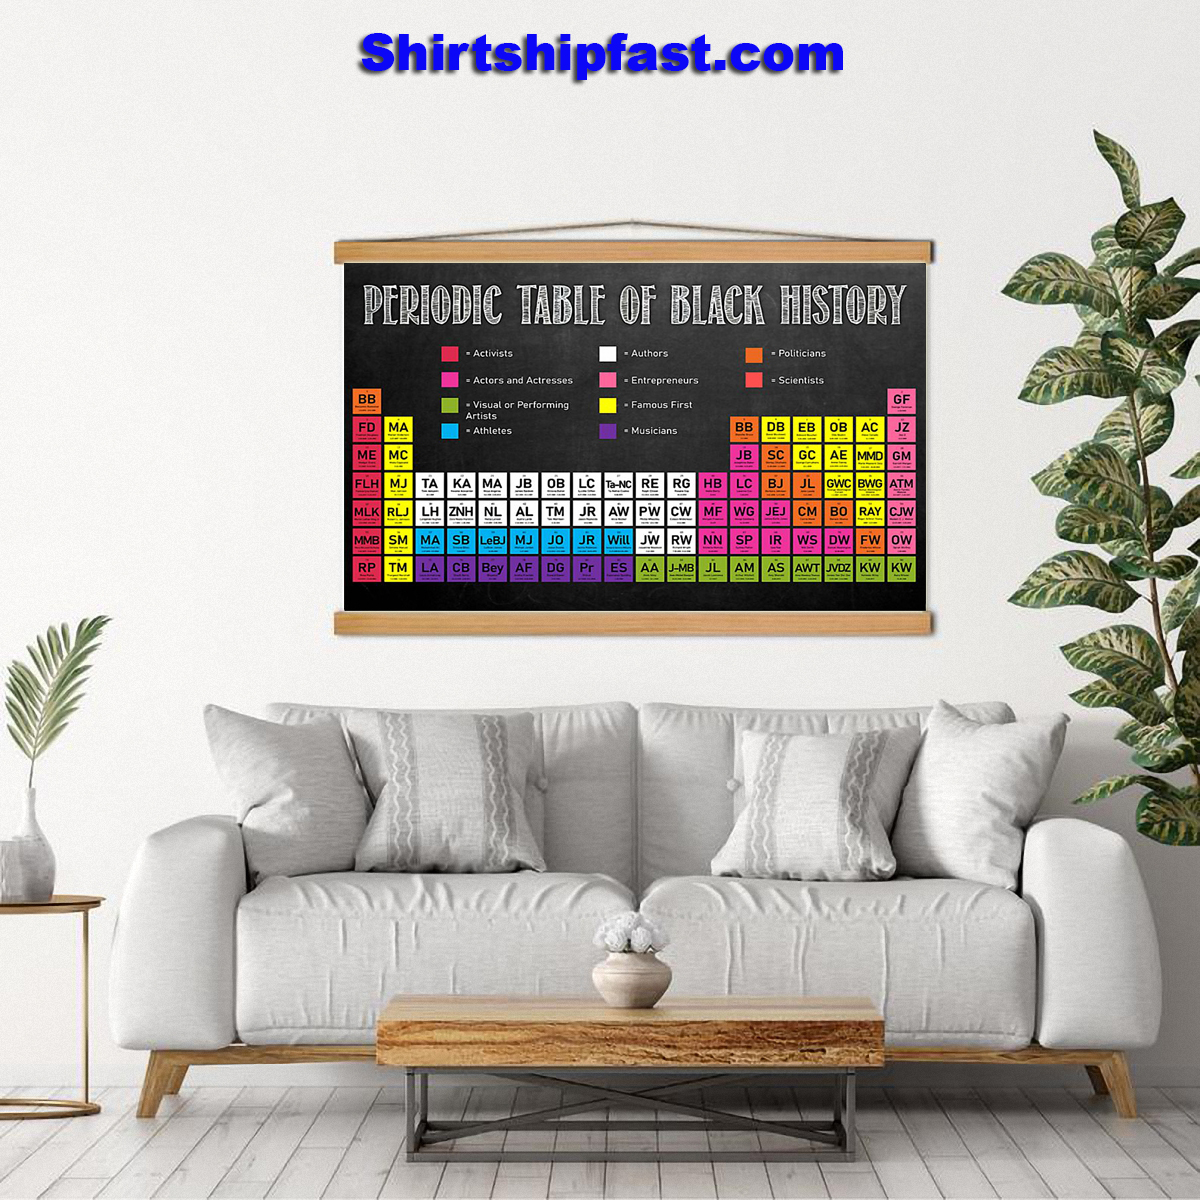 Periodic table of black history poster - Picture 1